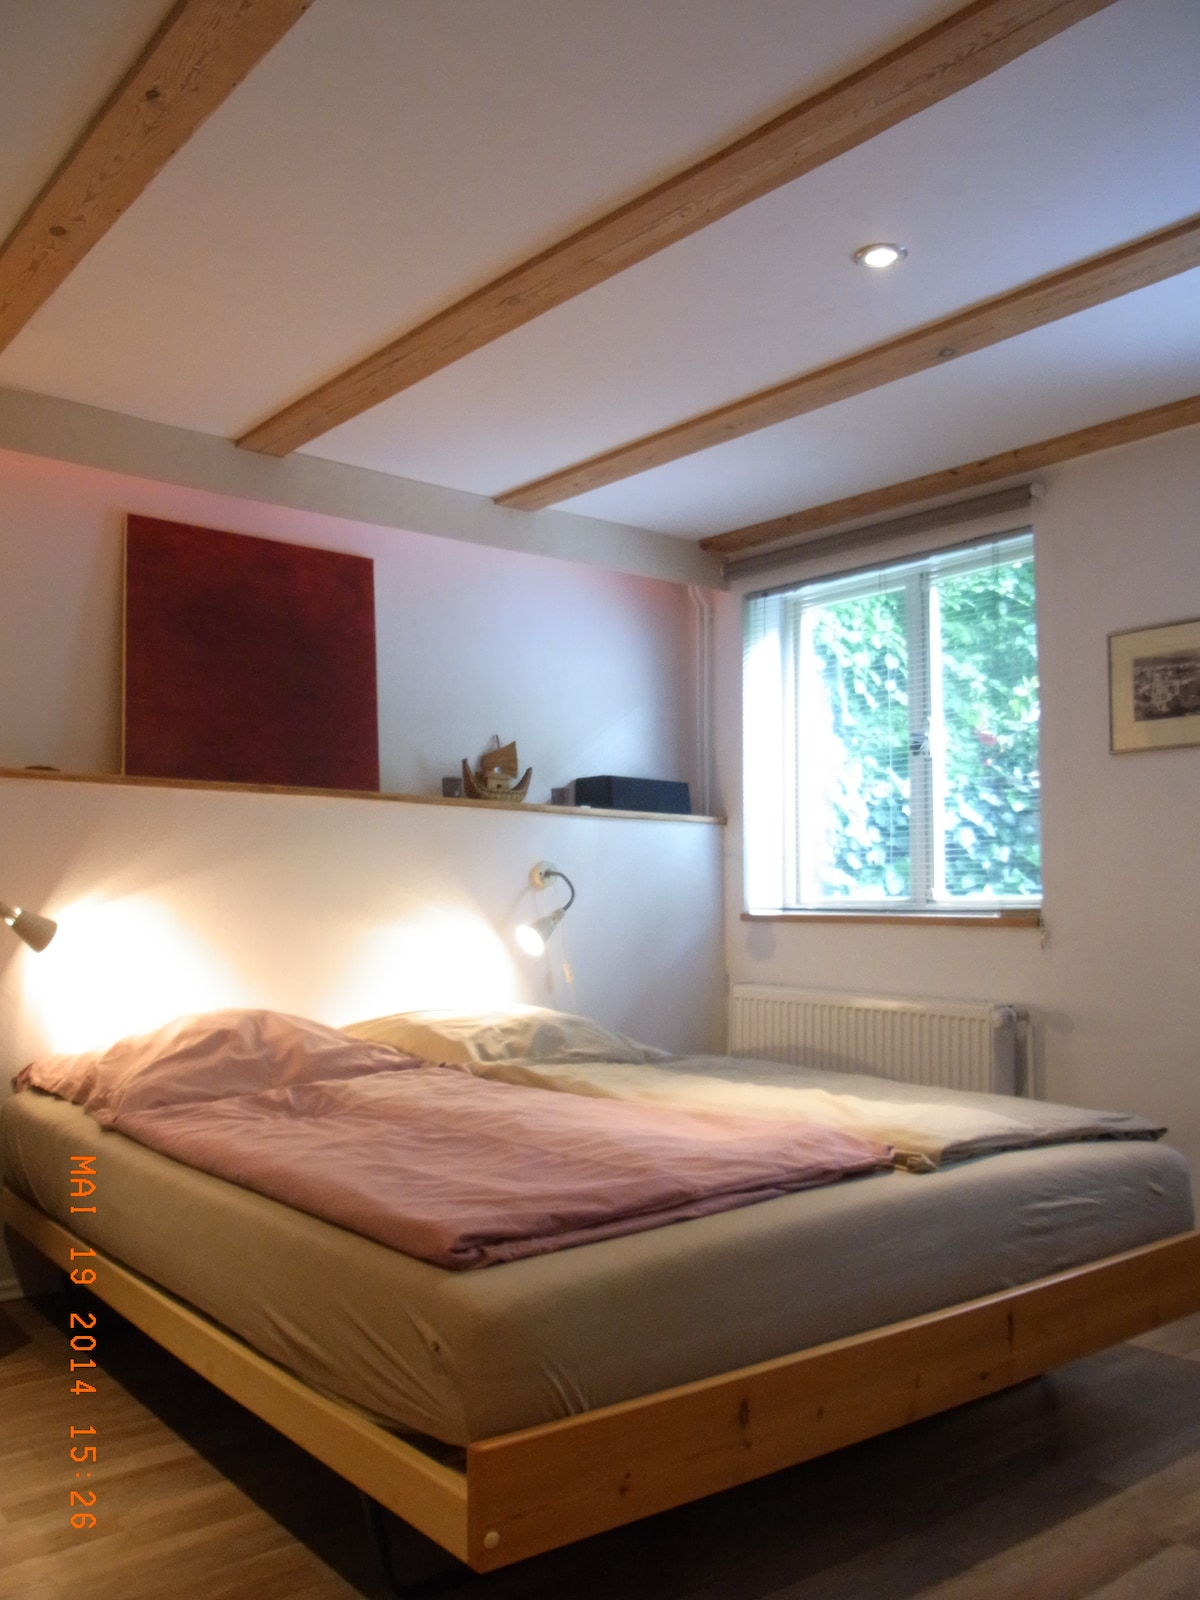 your room - the bed (1,60 x 2m) is appropriate for two people.